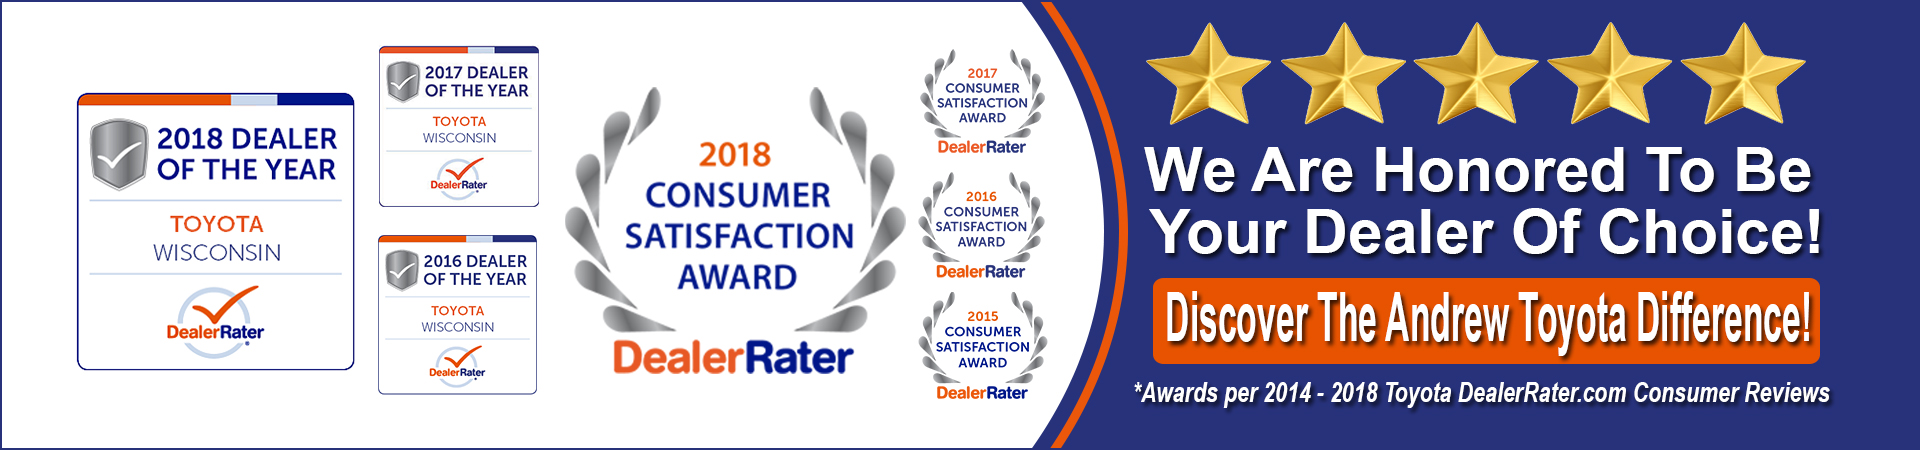 Andrew Toyota has been awarded a 2018 DealerRater Dealer of the Year Award, which recognizes auto dealerships across the U.S. and Canada who deliver outstanding customer service, based on consumer reviews written on DealerRater.com.